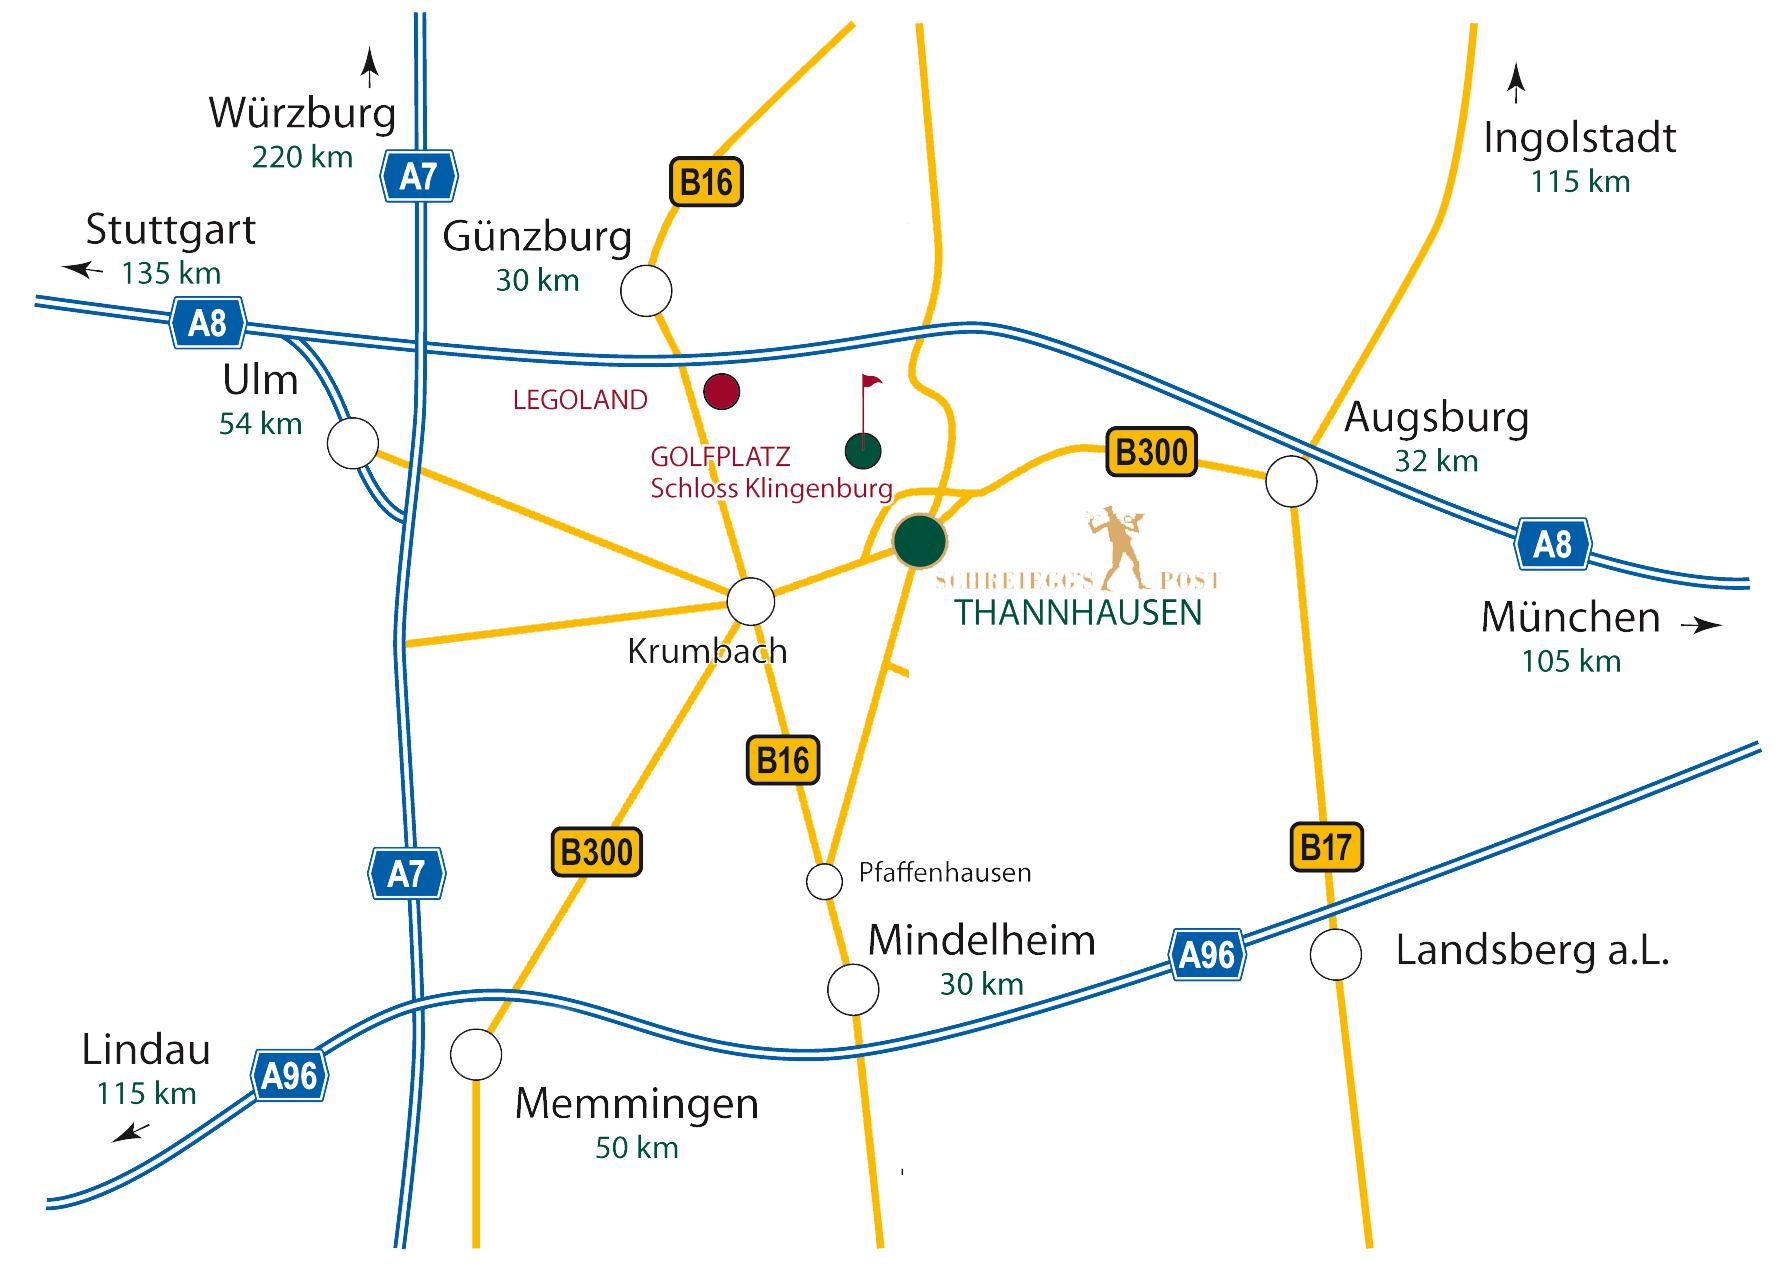 Location of the hotel between Augsburg and Ulm